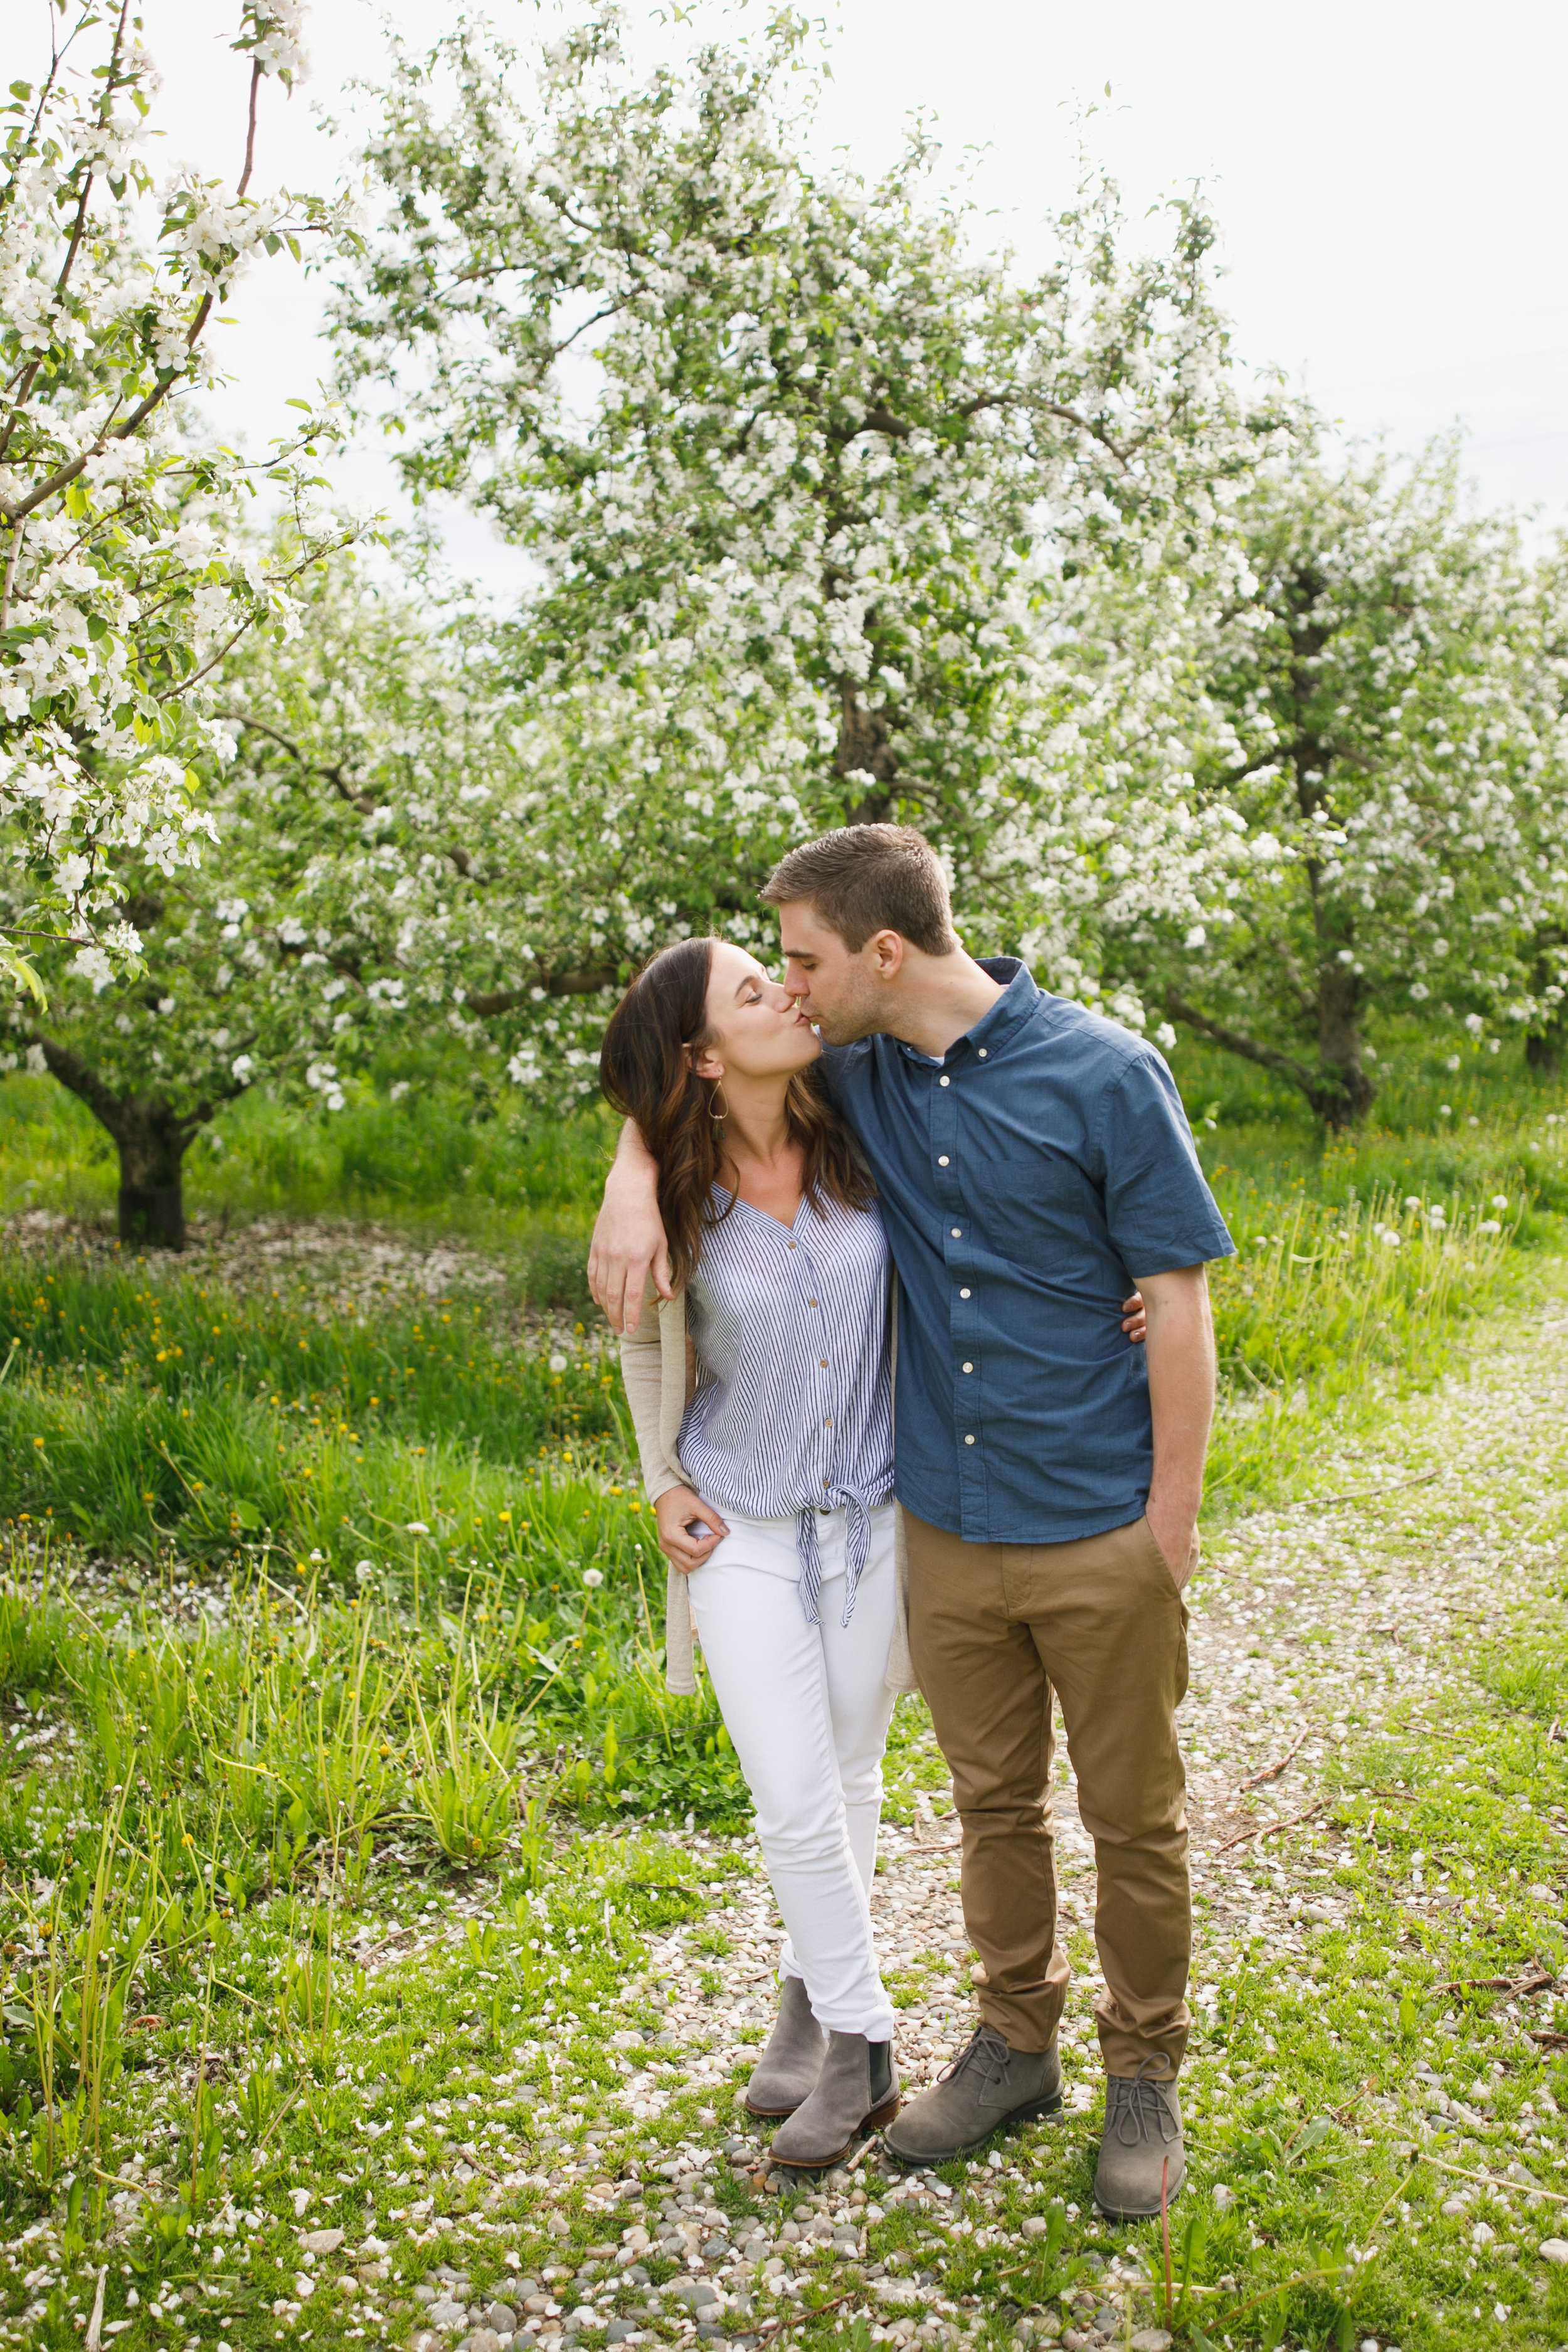 Grand Rapids Photographer - grand rapids wedding photographer - brian and katie engaged - apple blossoms - engagement session - jessica darling - sparta michigan - michigan wedding photographer- J Darling Photo002.jpg